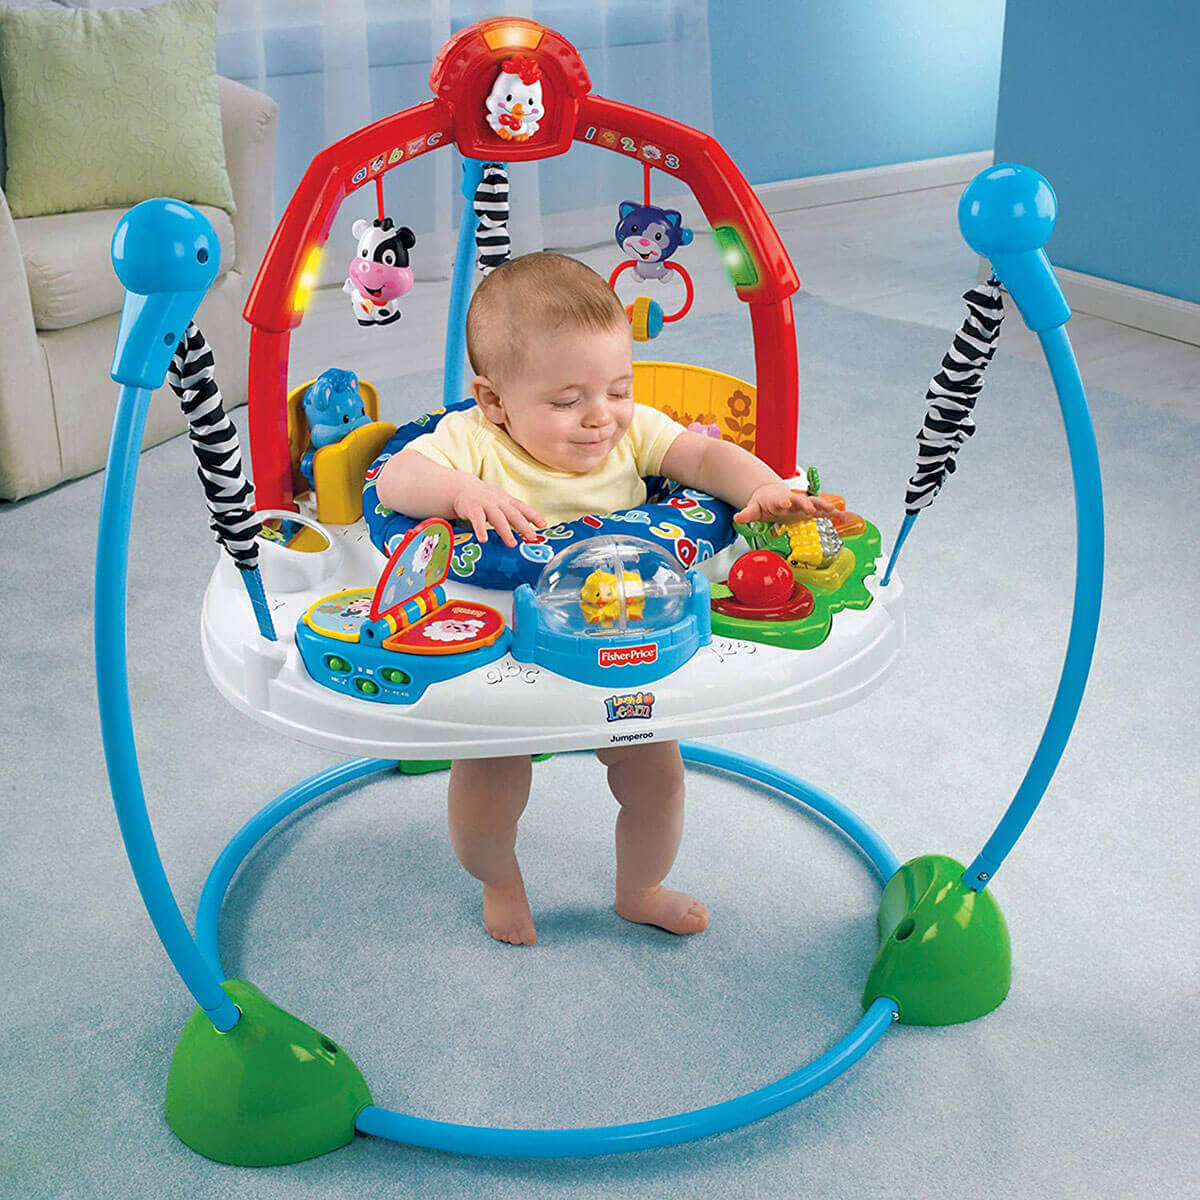 Baby is playing in Fisher-Price Laugh & Learn Jumperoo in living room